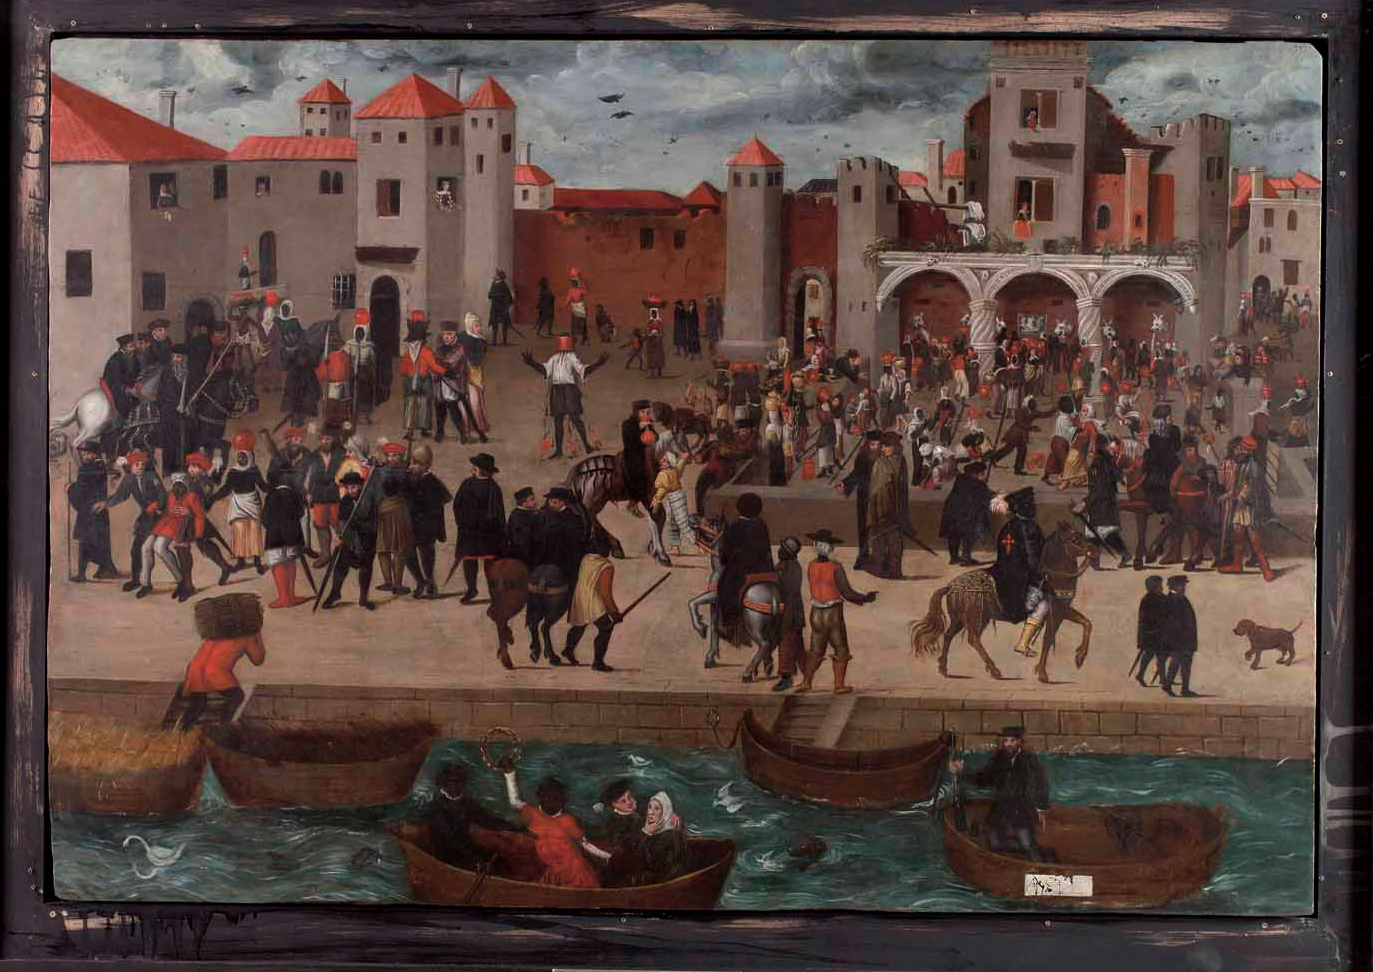 Netherlandish, Chafariz d'el Rey in the Alfama District (View of a Square with the Kings Fountain in Lisbon), ca. 1570-80